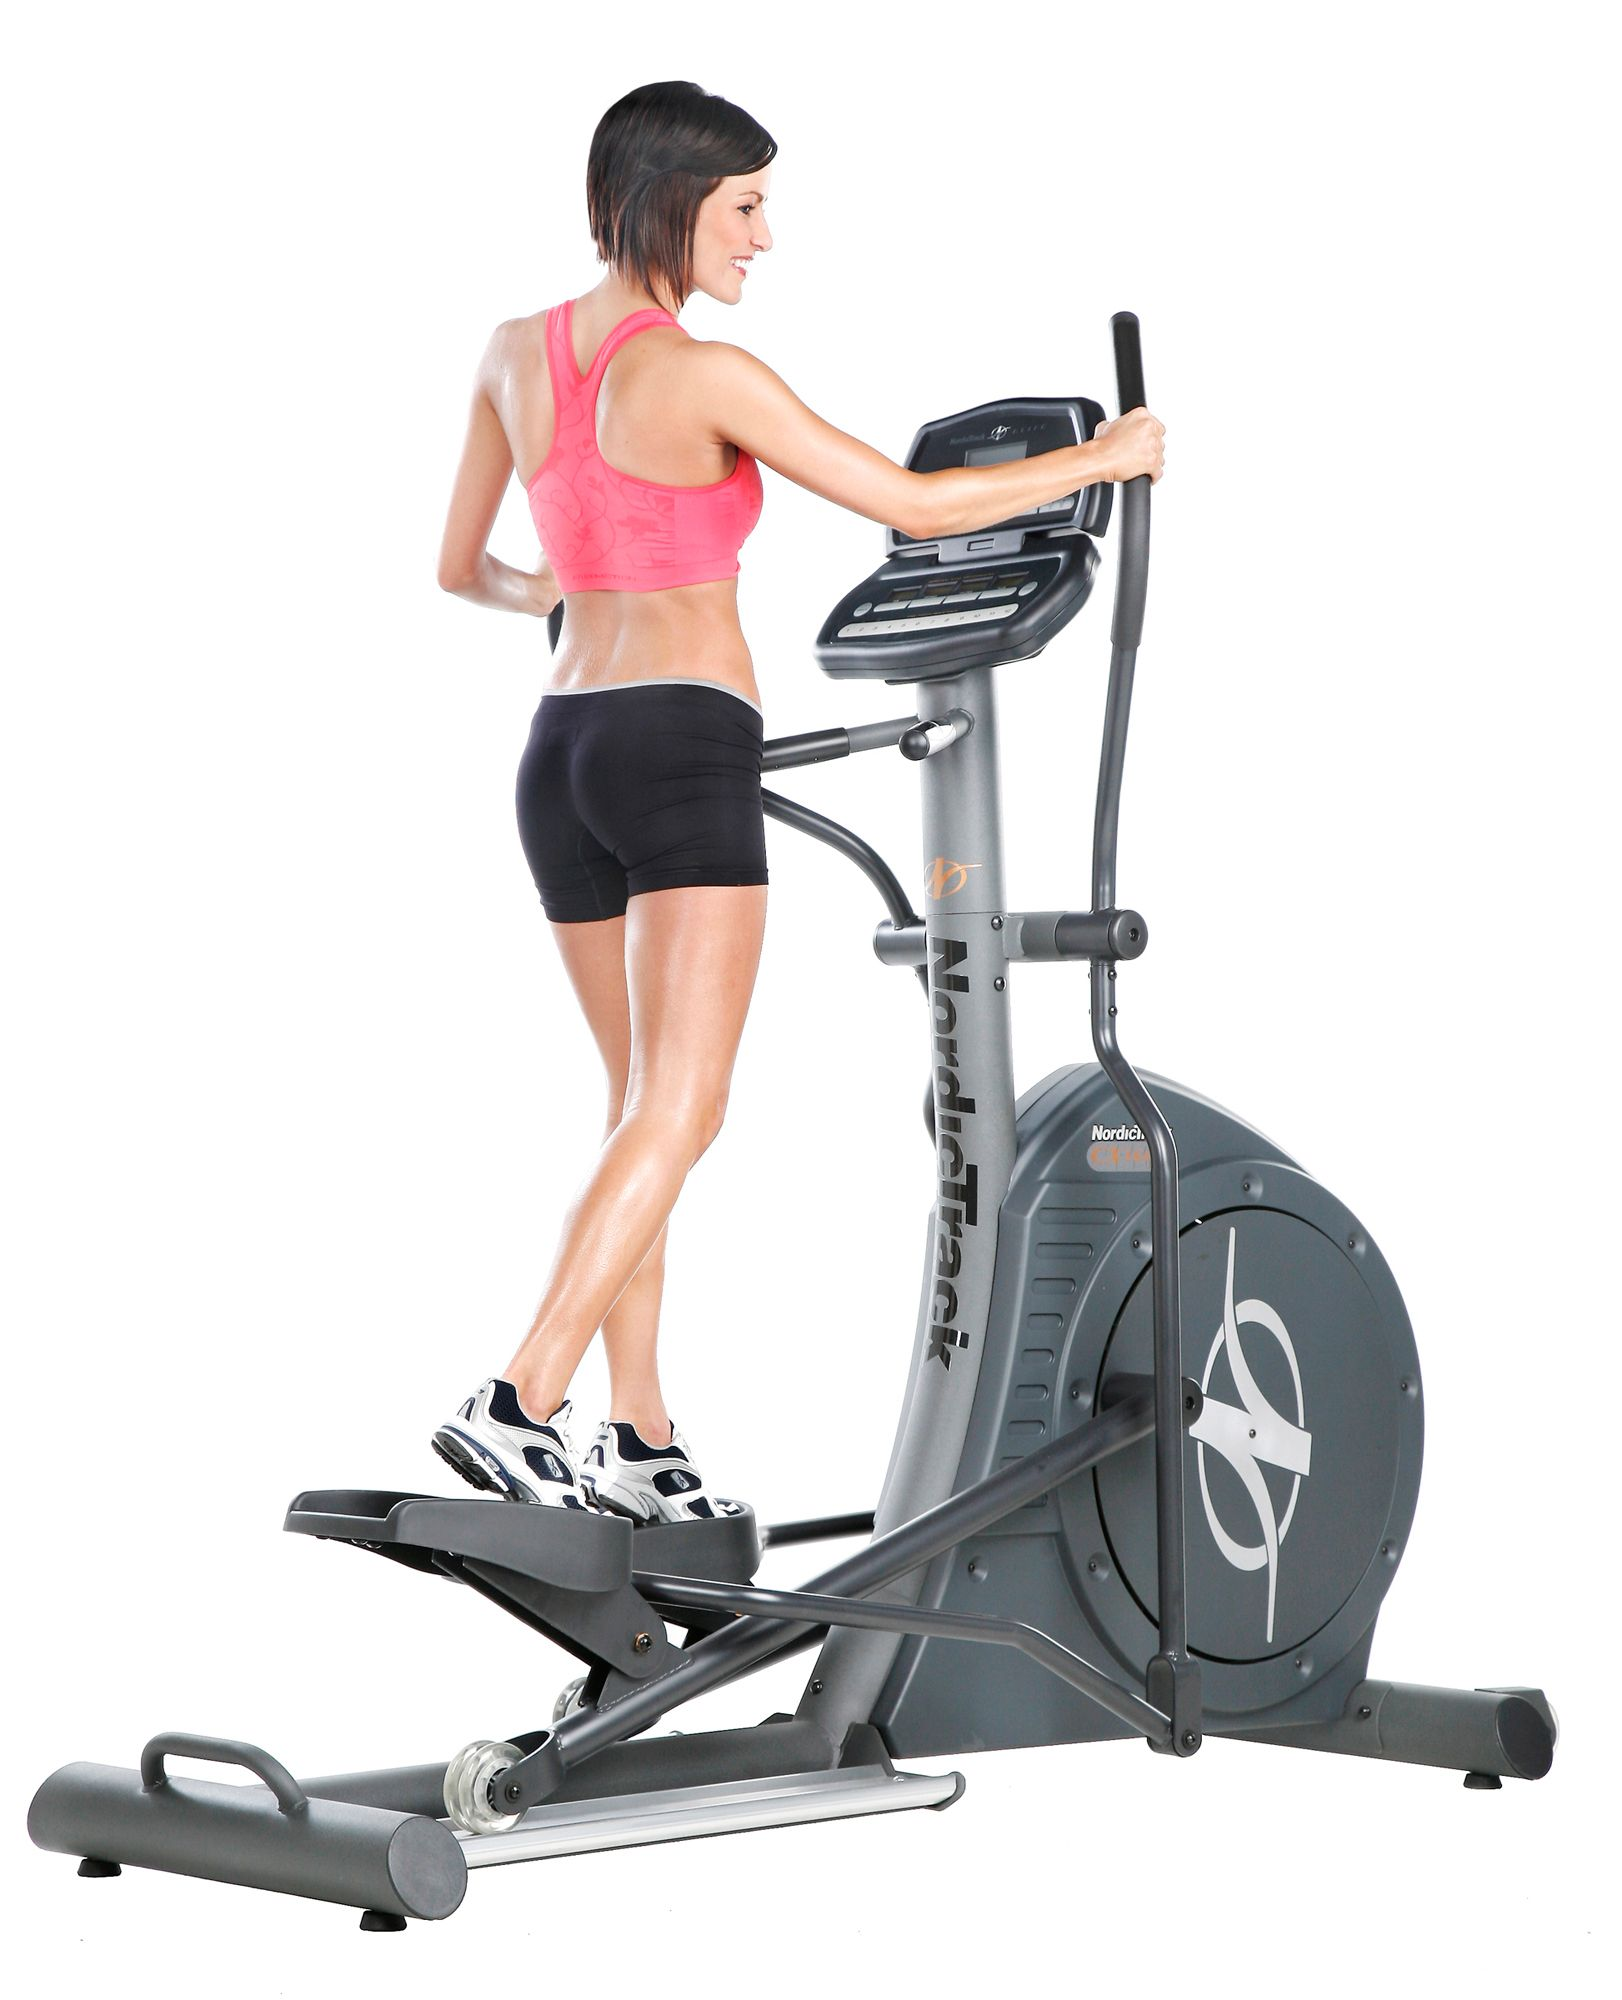 NordicTrack CX 1600 Elliptical